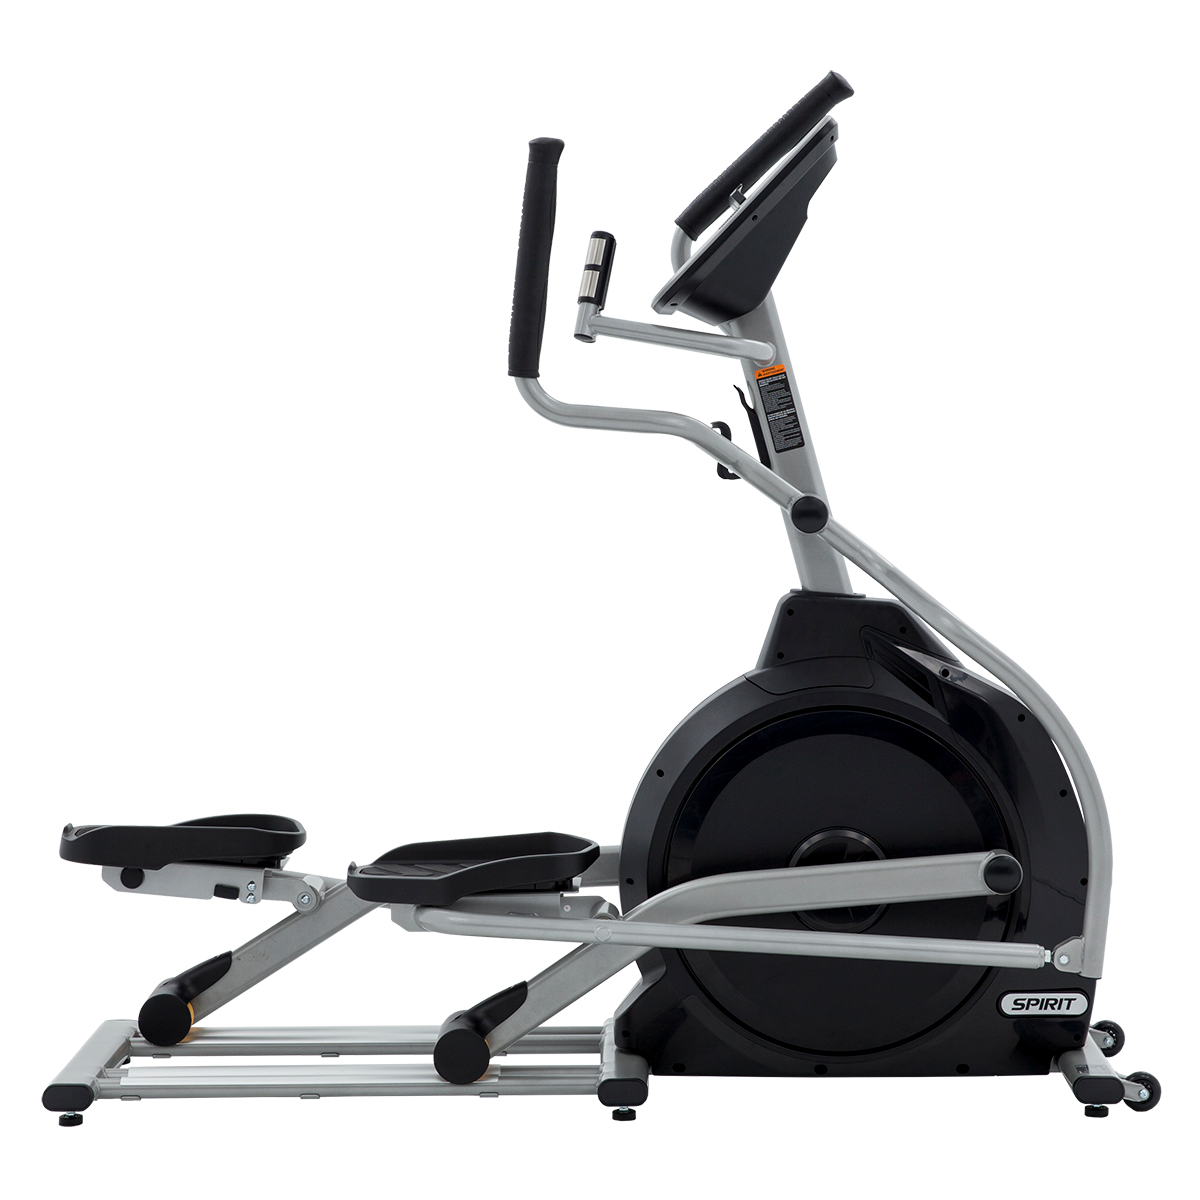 View from the side of the Spirit Fitness XE795 elliptical trainer.